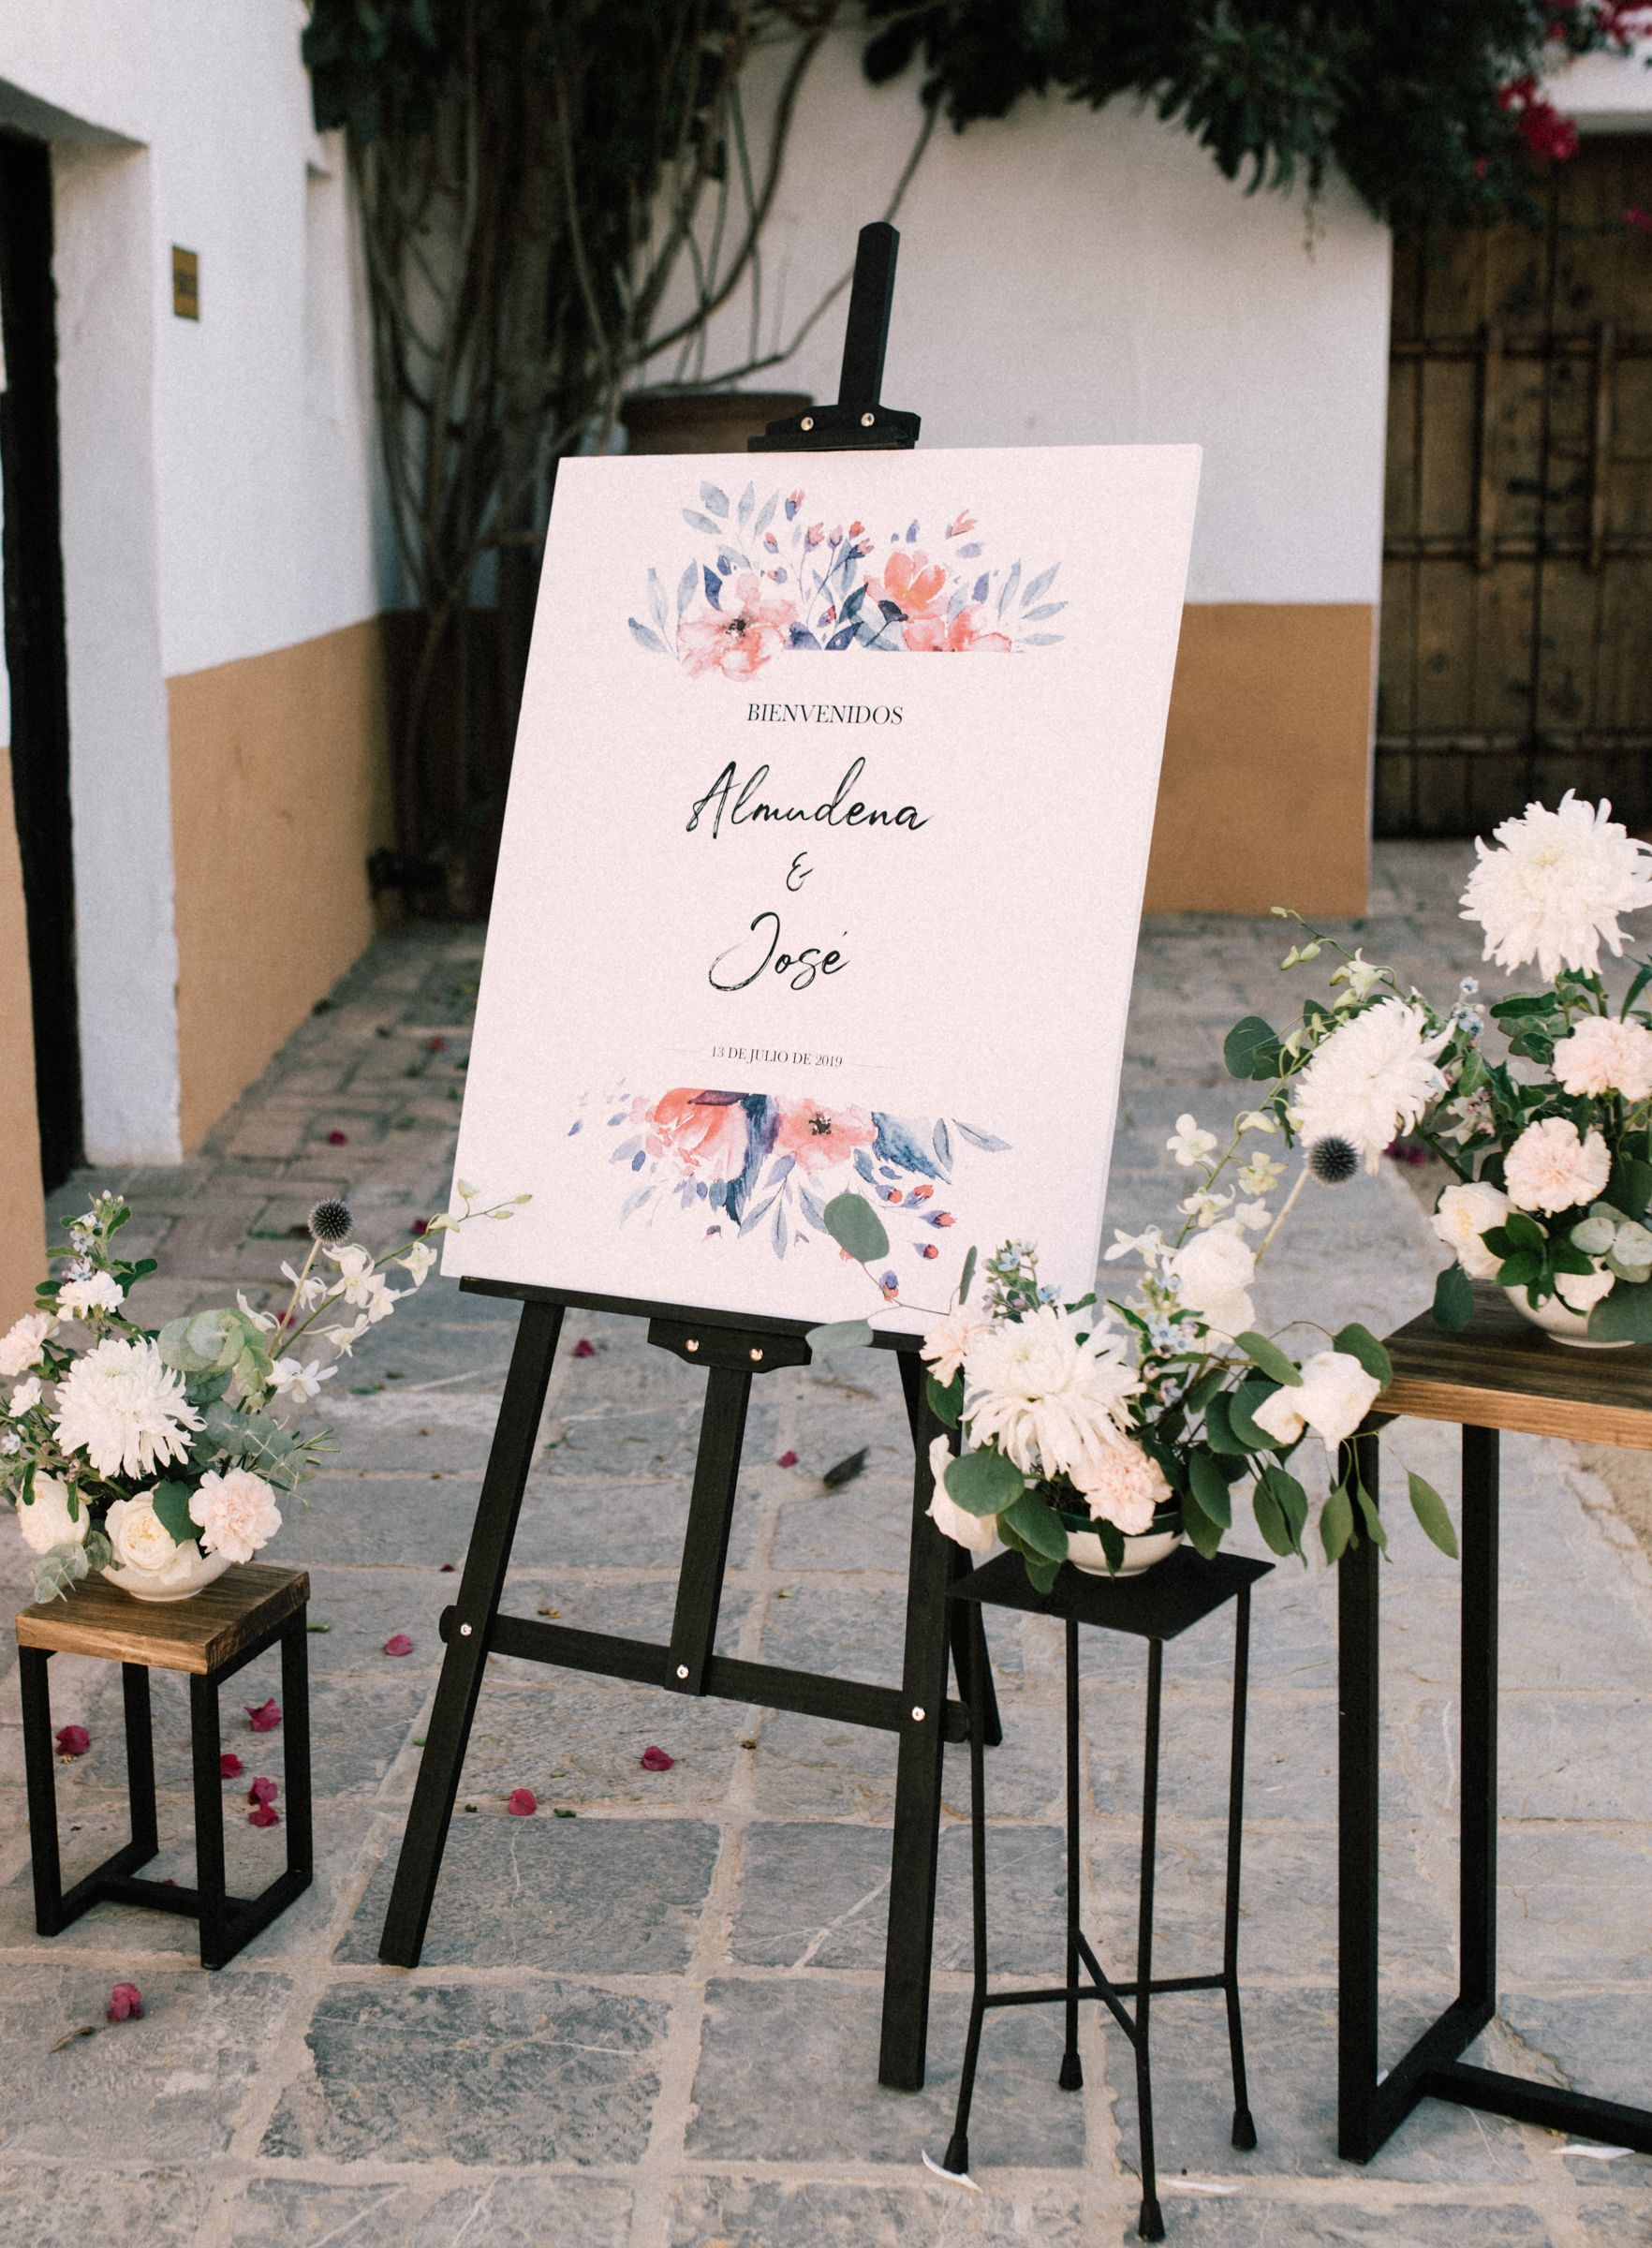 seating plan almudena y jose - weddings with love